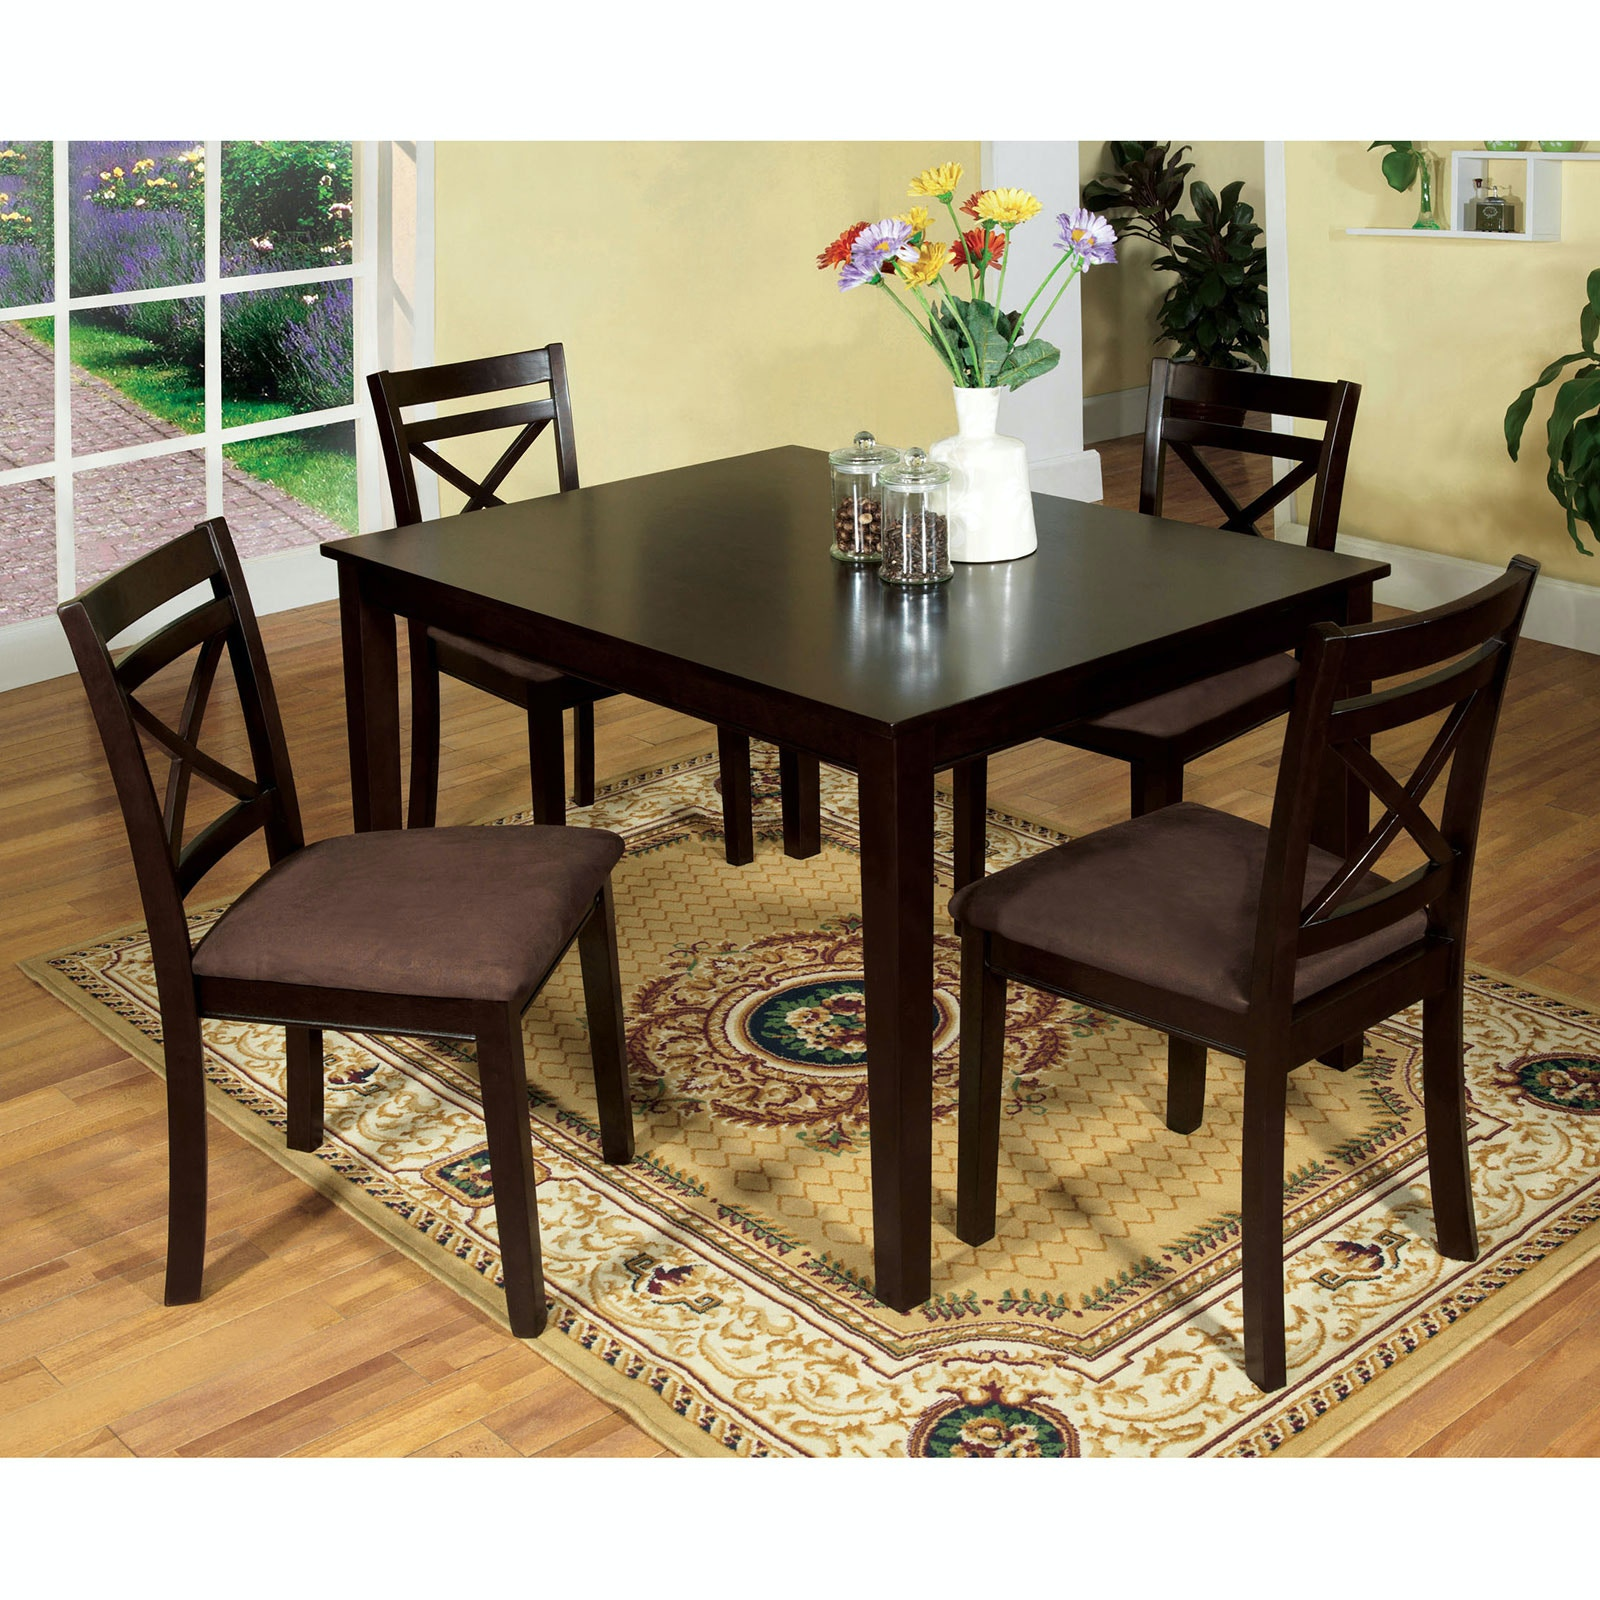 Furniture Of America Dining Room 5 Pc Dining Table Set Cm3400t 5pk Anna S Home Furnishings